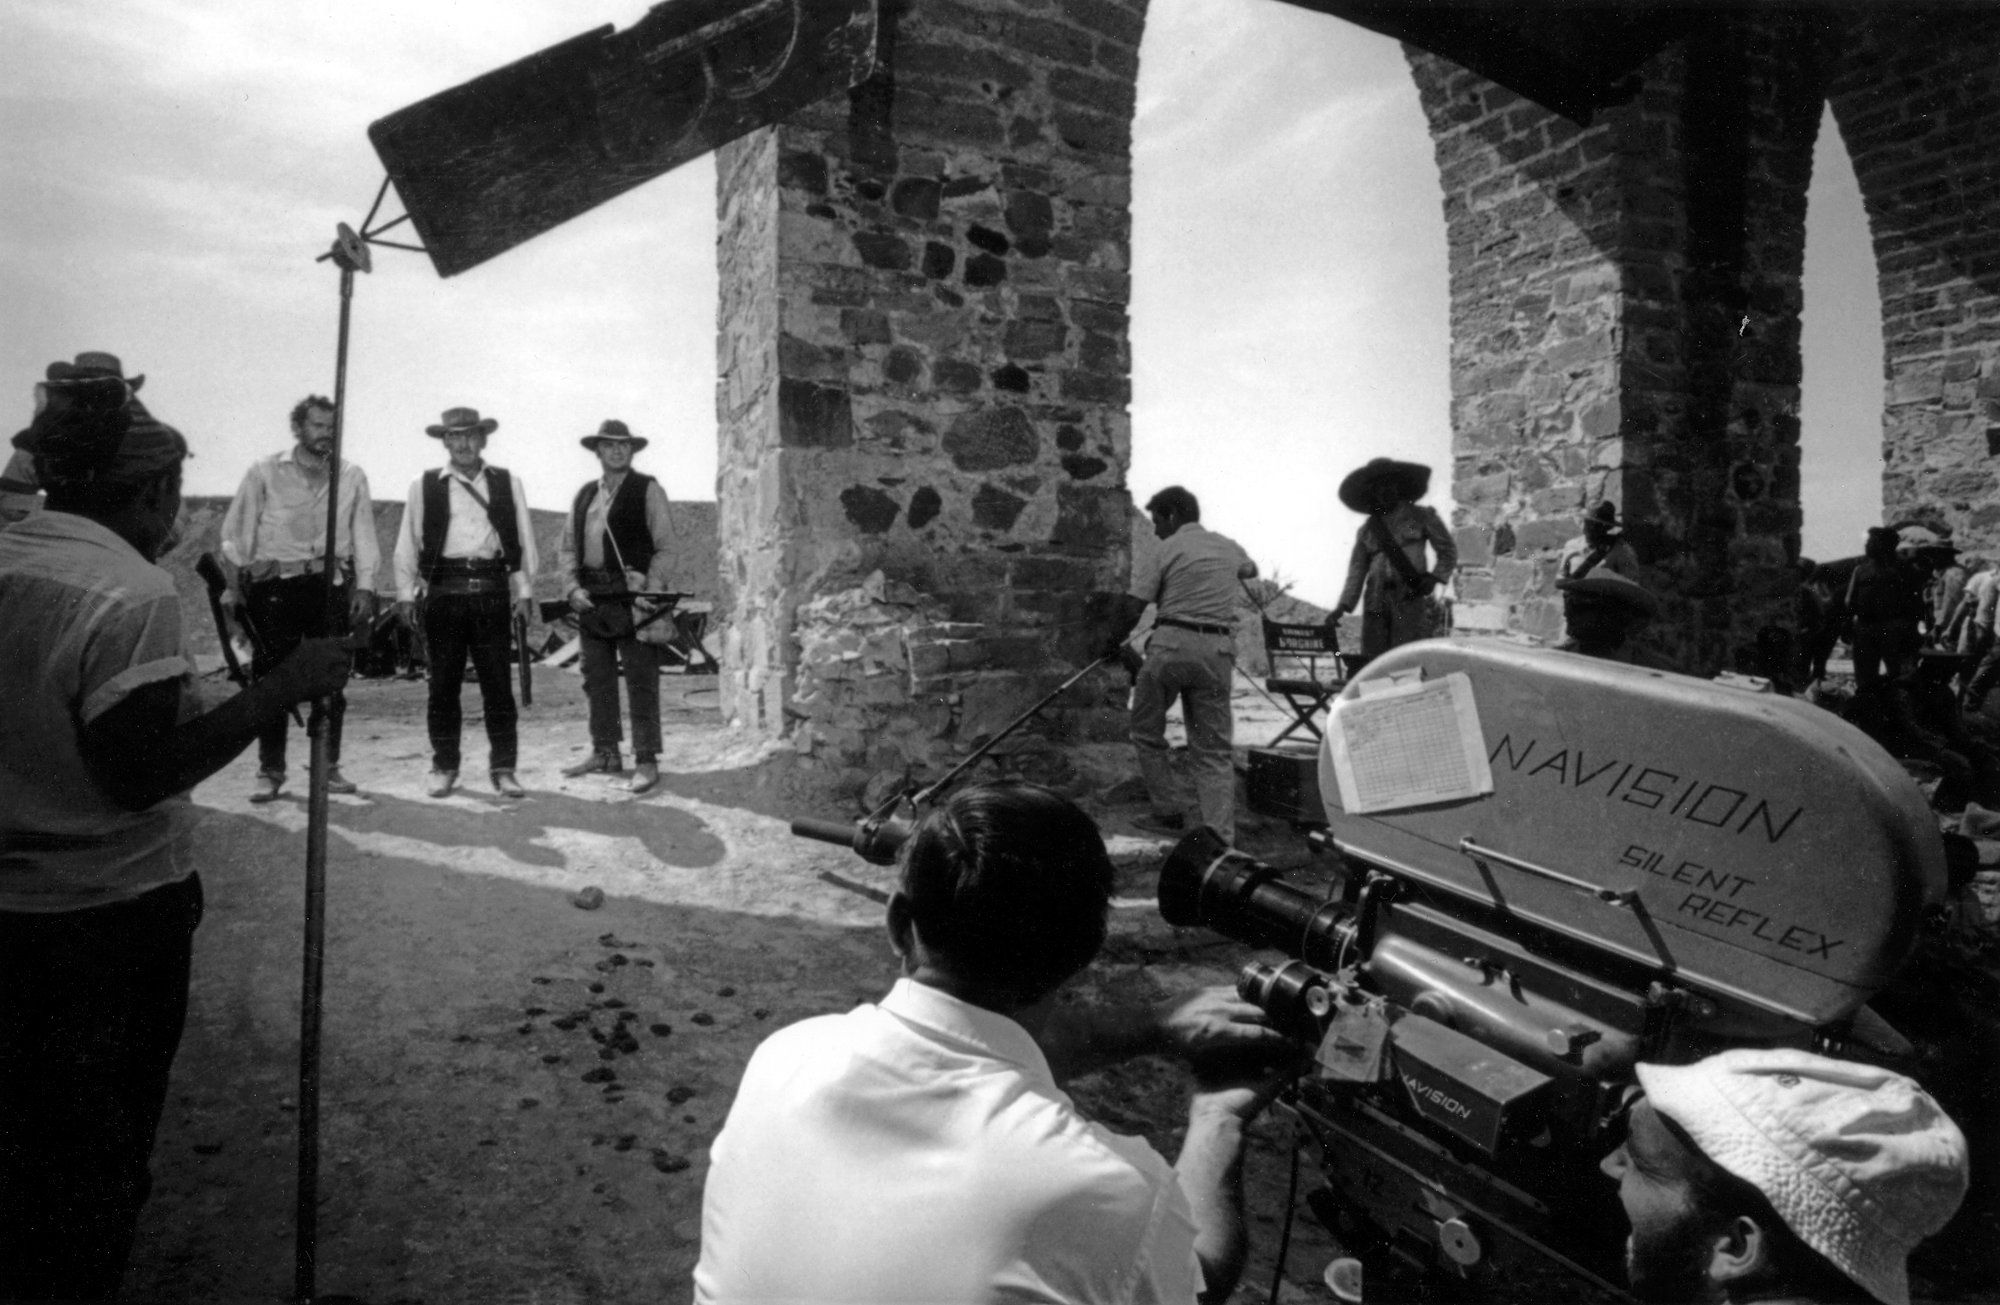 """""""It Ain't Like It Used to Be. But It'll Do:"""" How Sam Peckinpah's 'The Wild Bunch' Became Both a Eulogy for a Mythic Past and a Template for a New Kind of Action"""